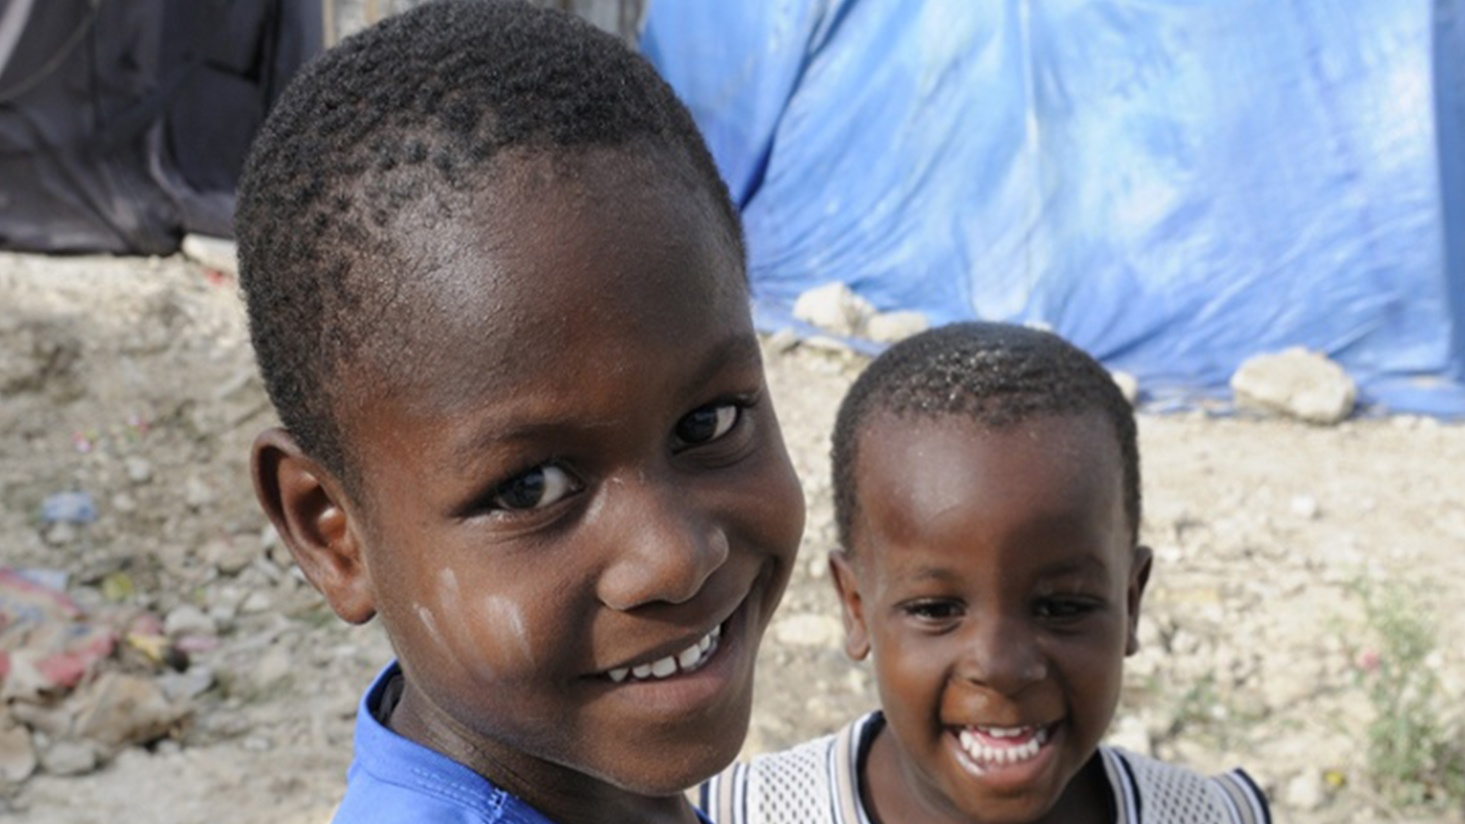 Building for a purpose: Regency to build an orphanage in Haiti